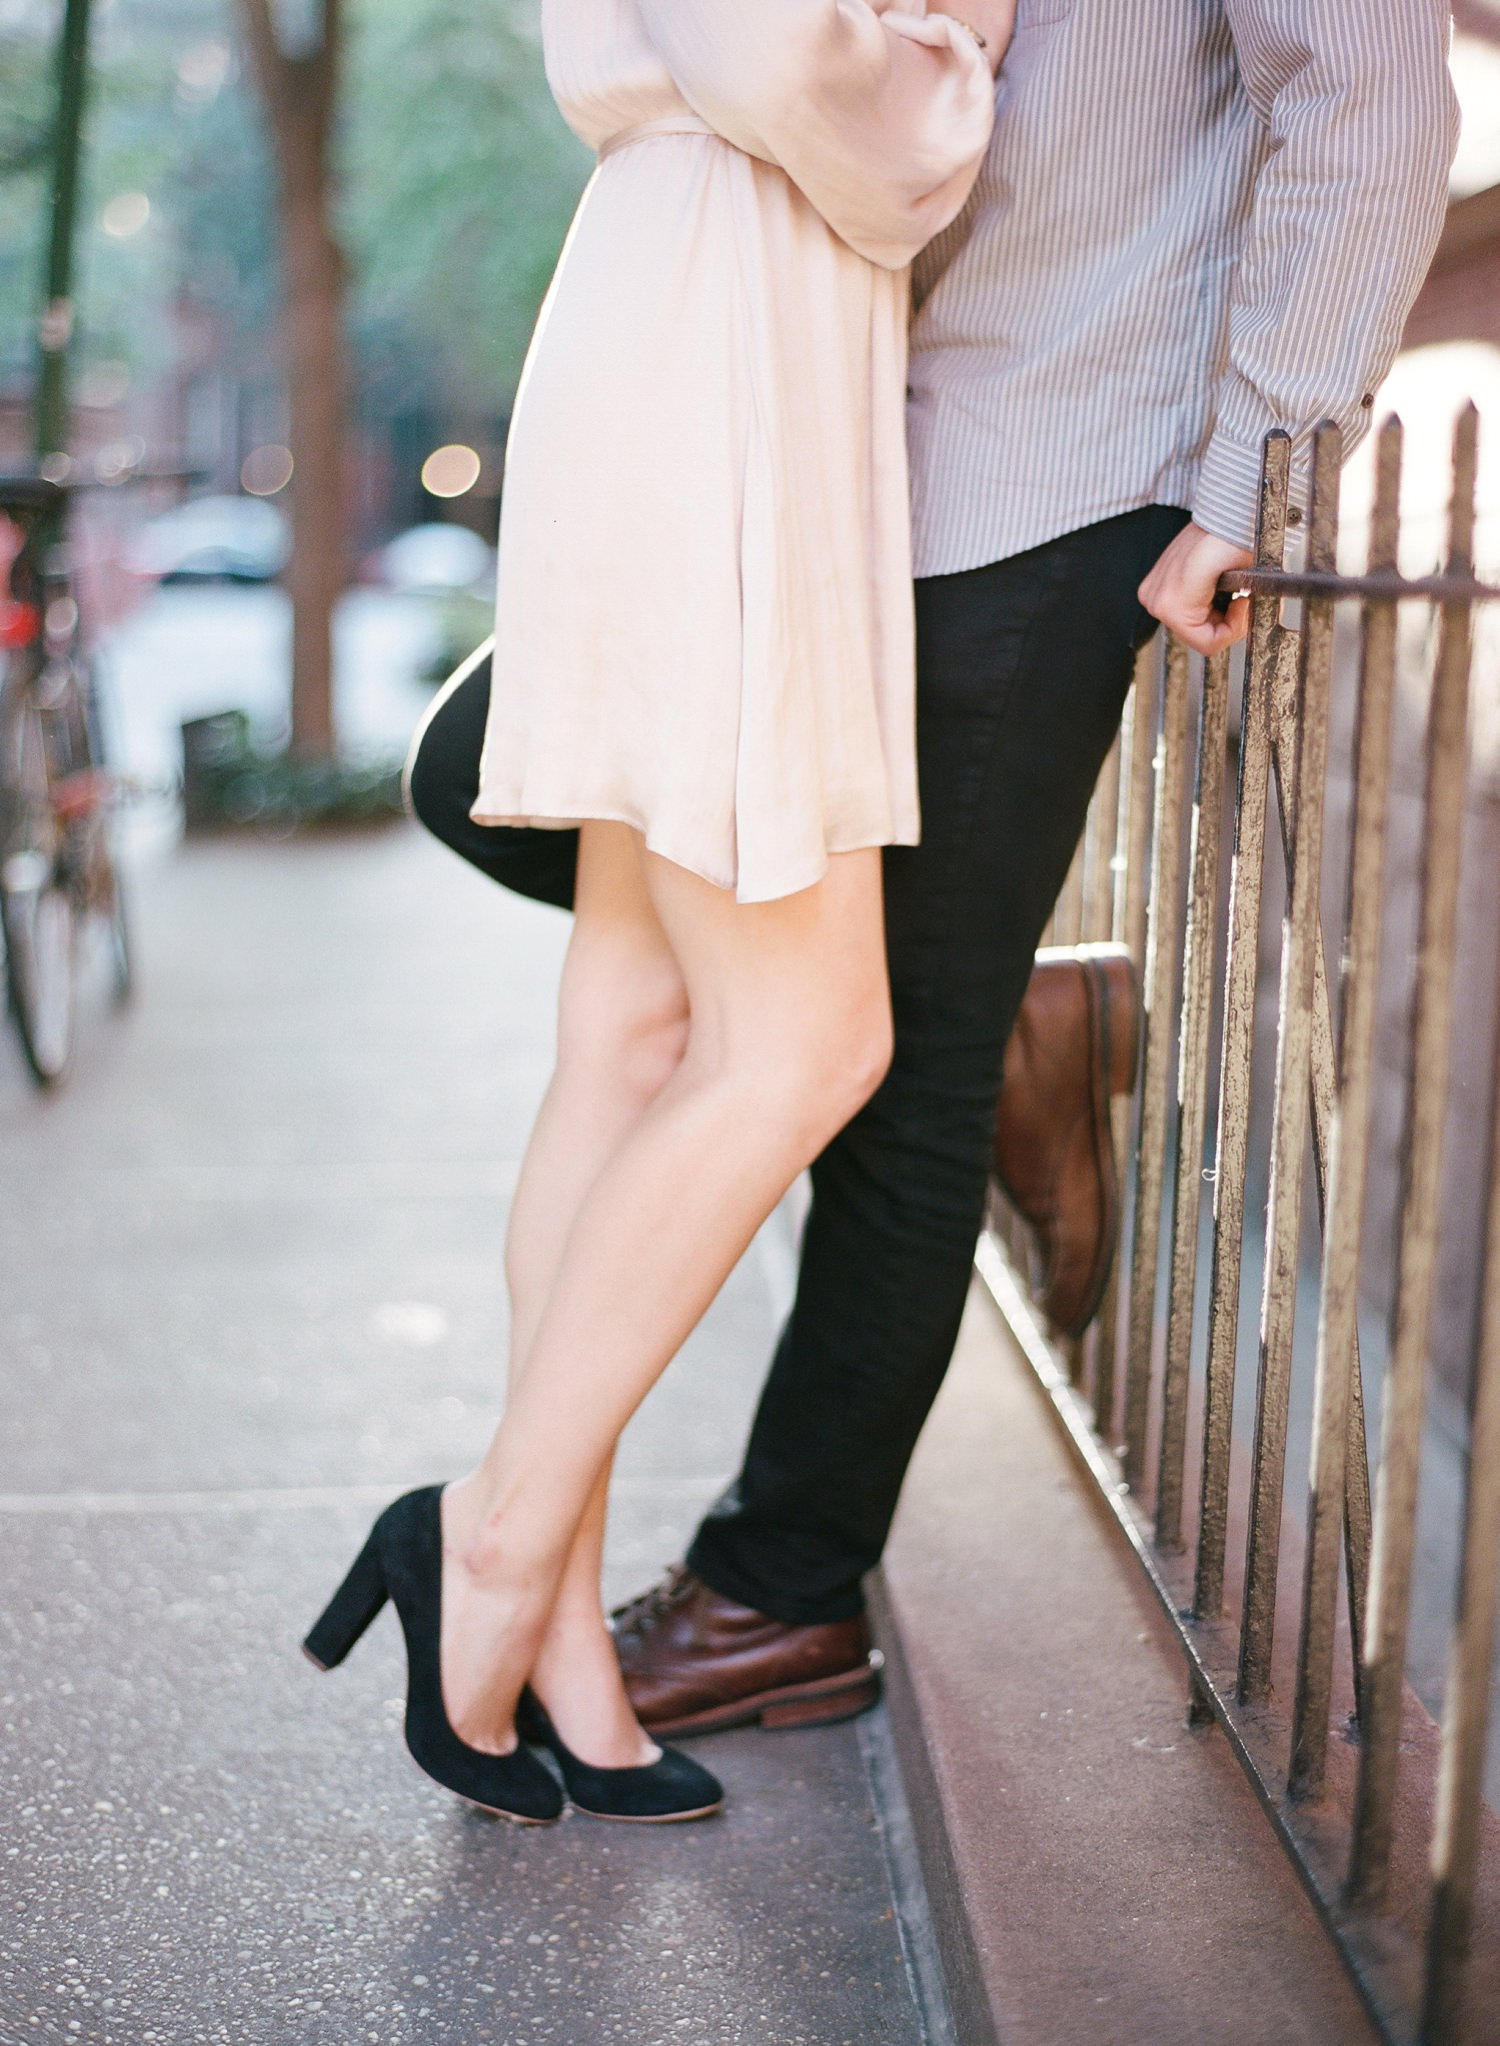 greenwich village engagement